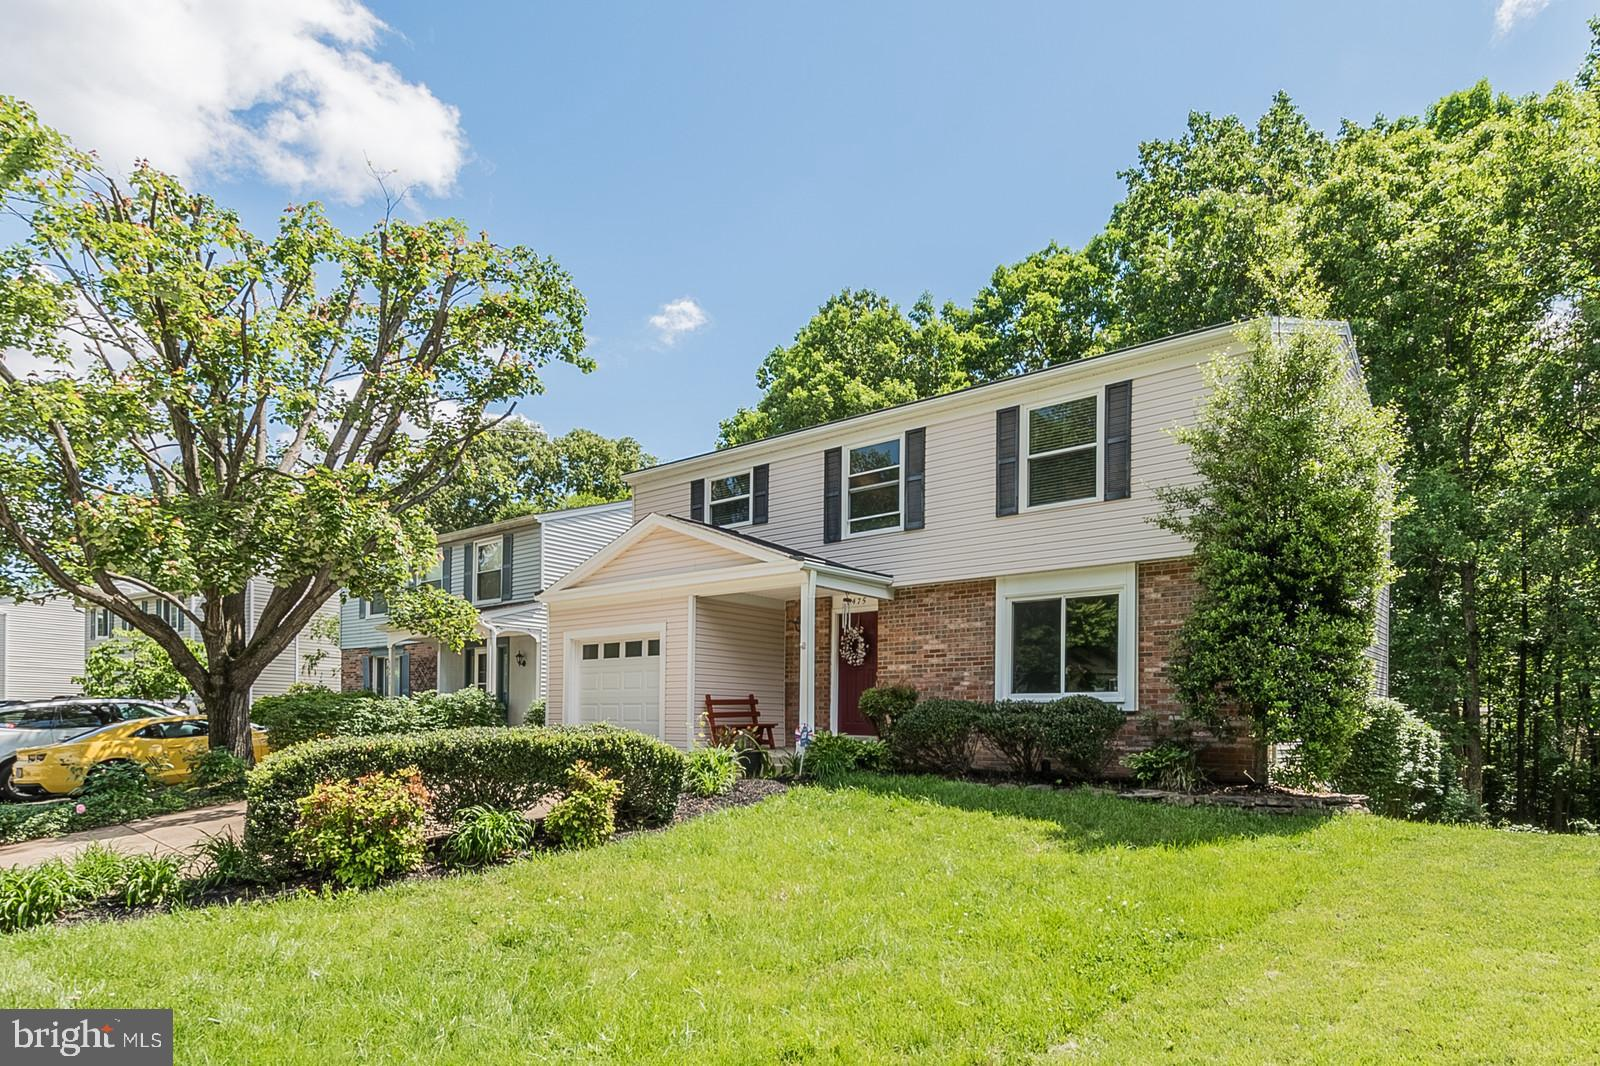 """Nestled on a quiet cul-de-sac street on a fabulous wooded lot, you will find space for everyone and everything in this 4 bedroom*, 3.5 bath detached home with garage. Many recent big-ticket improvements include windows, HVAC, lower level jacuzzi bath, water heater and more The remodeled kitchen/family room, complete with granite kitchen island, will be the heart of activity. The large master bedroom has an exceptional walk-in closet and spa-like bathroom. The lower level could be a separate apartment. It has its own entrance. There are two large flex spaces to use any way you want. Office, workout room, craft room, music room, playroom....whatever your needs. The complete lower level could also be used as an in-law suite. There is a full bath for your convenience as well as a laundry room. The door to the outside leads to a concrete~patio for you to enjoy summer gatherings. Play games in the flat back yard. Complete with a storage shed to conveniently store needed items. All this in a treed setting that gives a """"back to nature"""" feeling where you can watch wildlife and relax after a long day.  Located in Newington Forest, where more than 50% of the land is set aside for common areas, ~Newington Forest is a neighborhood that is full of amenities: pool, community center, tennis courts, tot lots, basketball courts, ball field, 2.5 miles of hiker-biker trails connecting to the South Run Stream Valley Park. This special home is centrally located to major transportation routes. Close to 495, 95, 395, Fairfax County Parkway, Franconia/Springfield Metro (park and ride). Close to Fort Belvoir. Approximately 30 minutes to D.C. and the Pentagon. Newington Forest is also serviced by public transportation. This property is approximately 3 miles from the Lorton VRE train station making the commute to National Landing/Crystal City a breeze. Great for Amazon employees!Minutes to Springfield Mall and Kingstowne with all the surrounding stores, restaurants and entertainment. Everythin"""